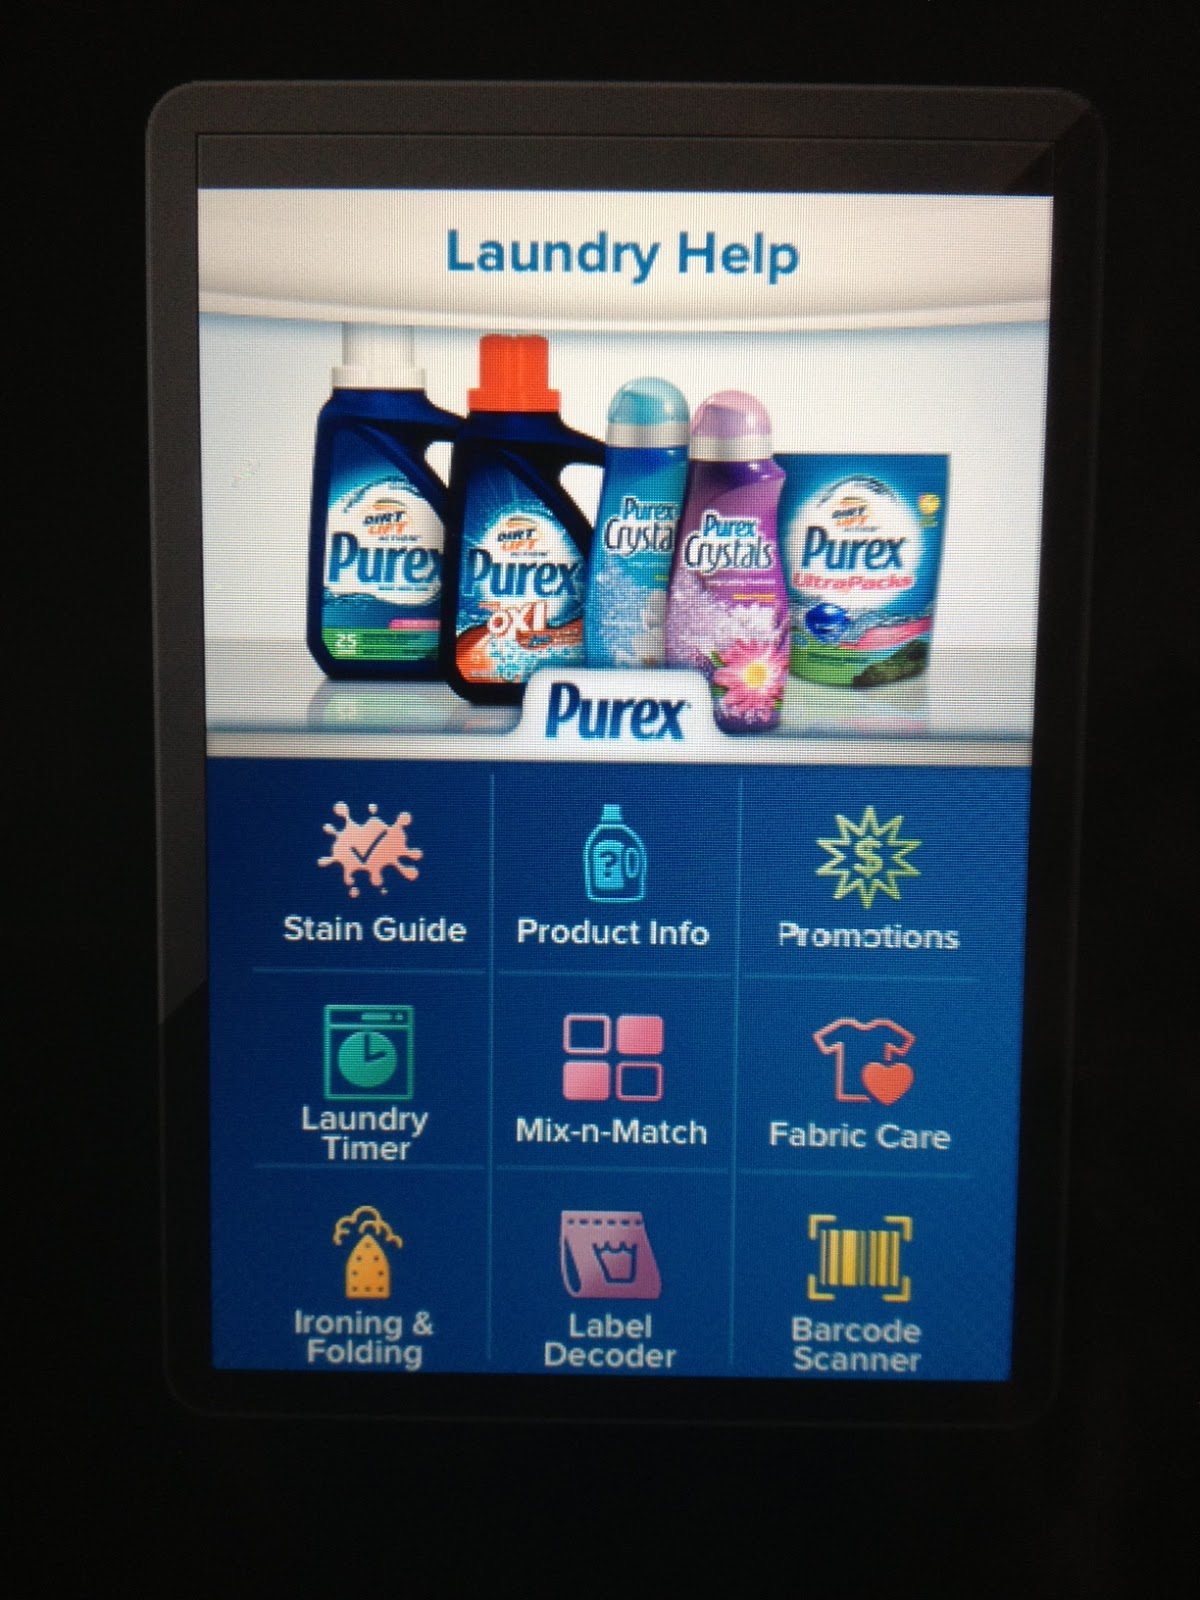 sweepstakes app cummins life new purex laundry app sweepstakes ipad 6842